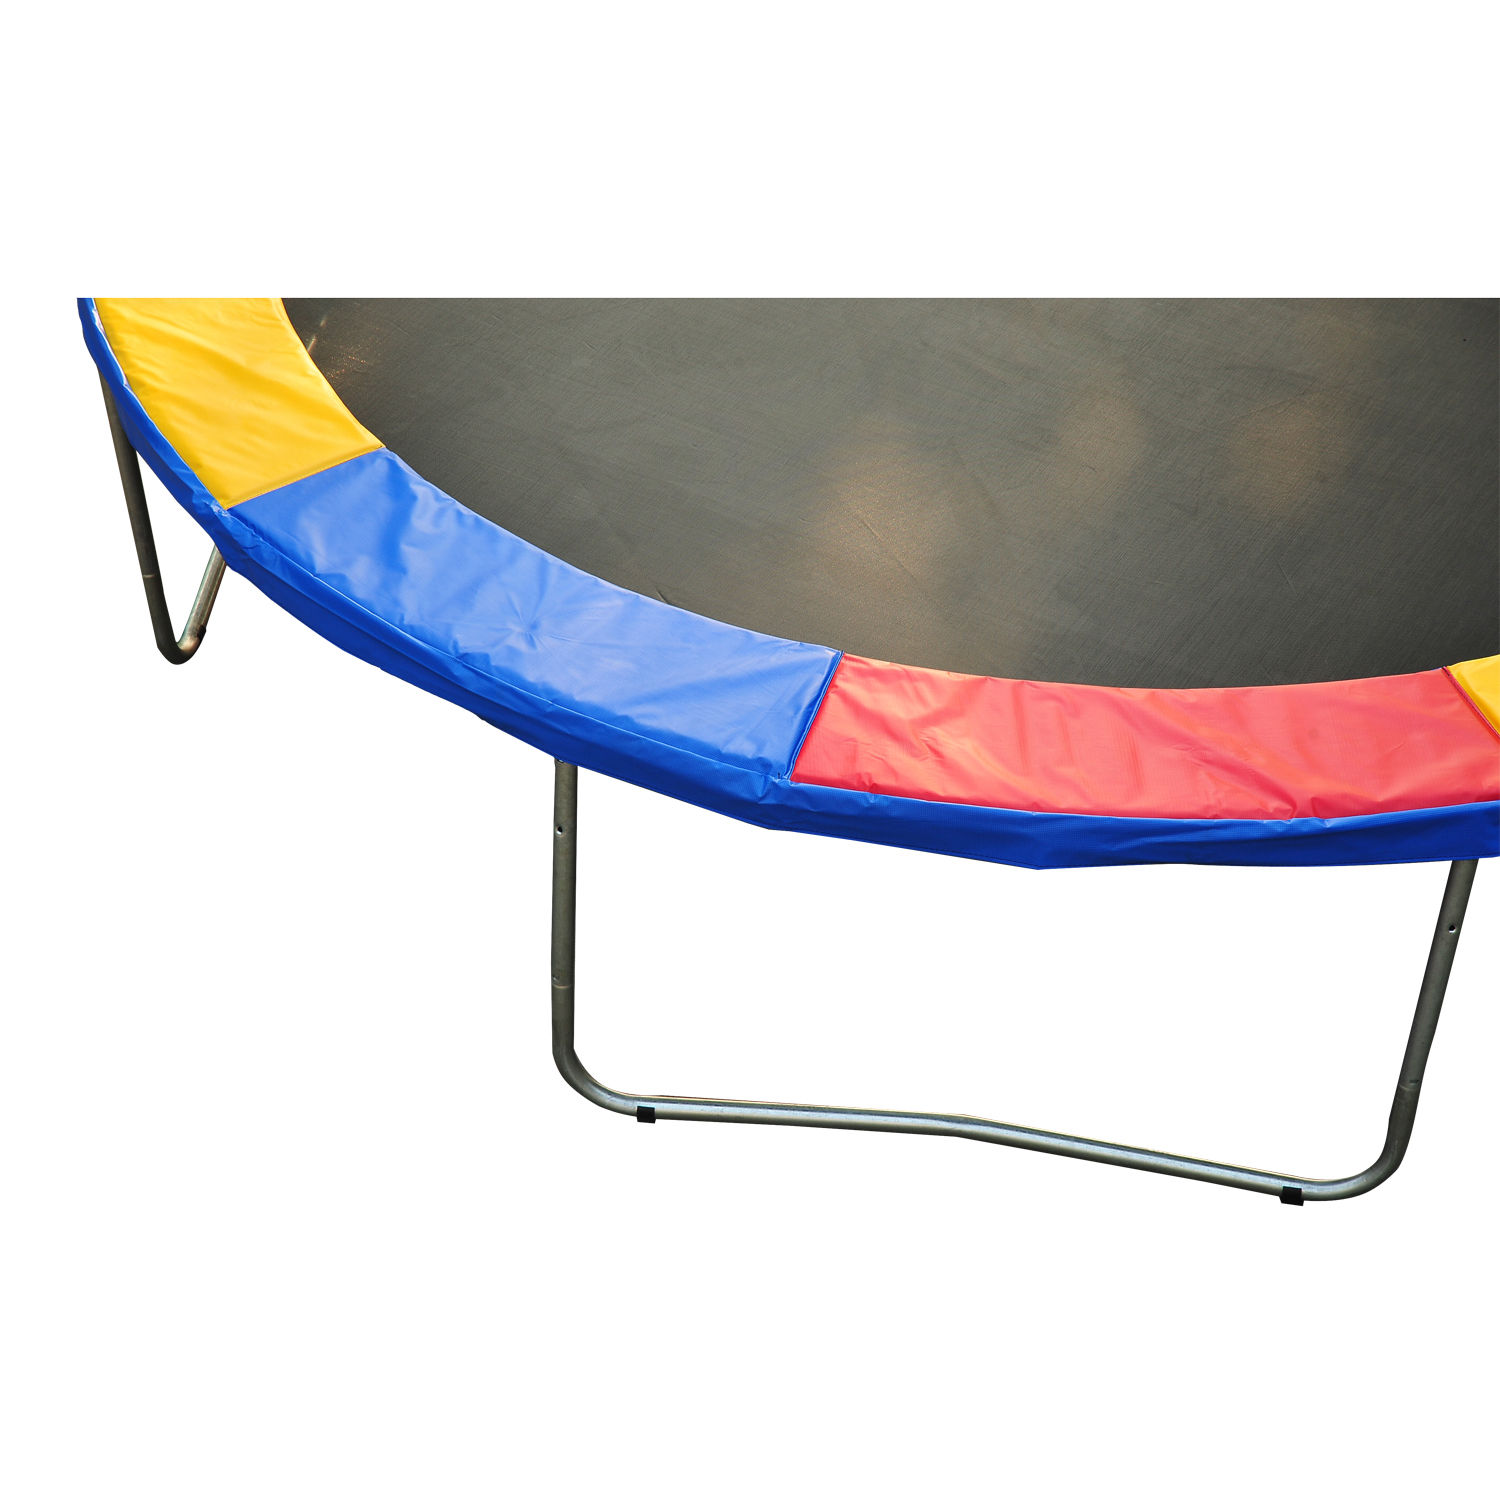 8ft-Trampoline-Pad-Spring-Safety-Replacement-Gym-Bounce-Jump-Cover-EPE-Foam thumbnail 10